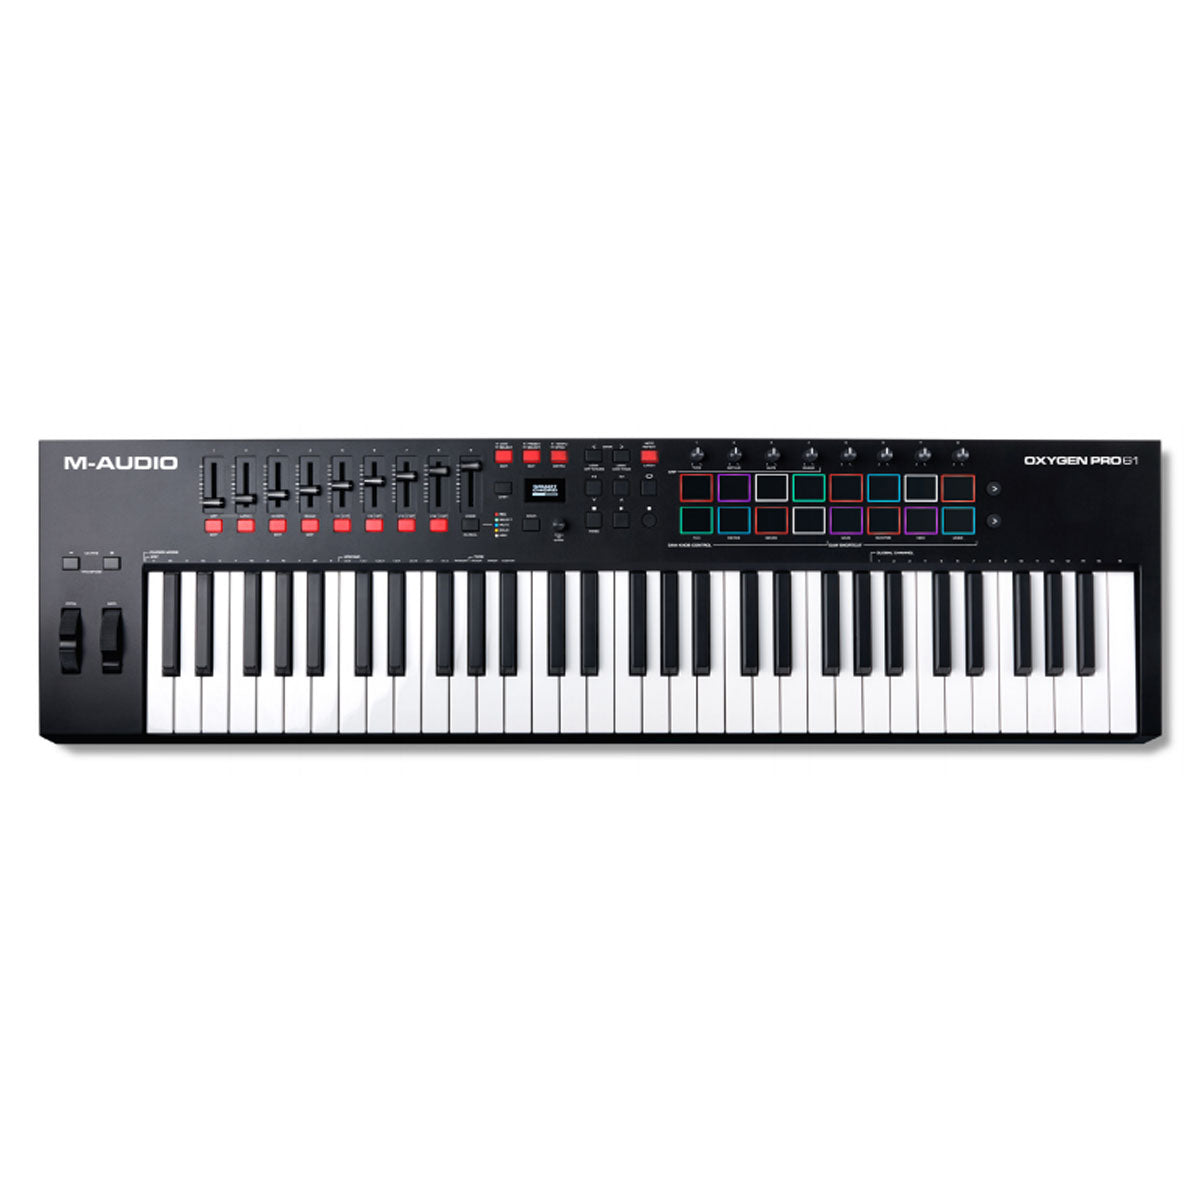 M-Audio Oxygen Pro 61 USB Controller Keyboard 61-Note